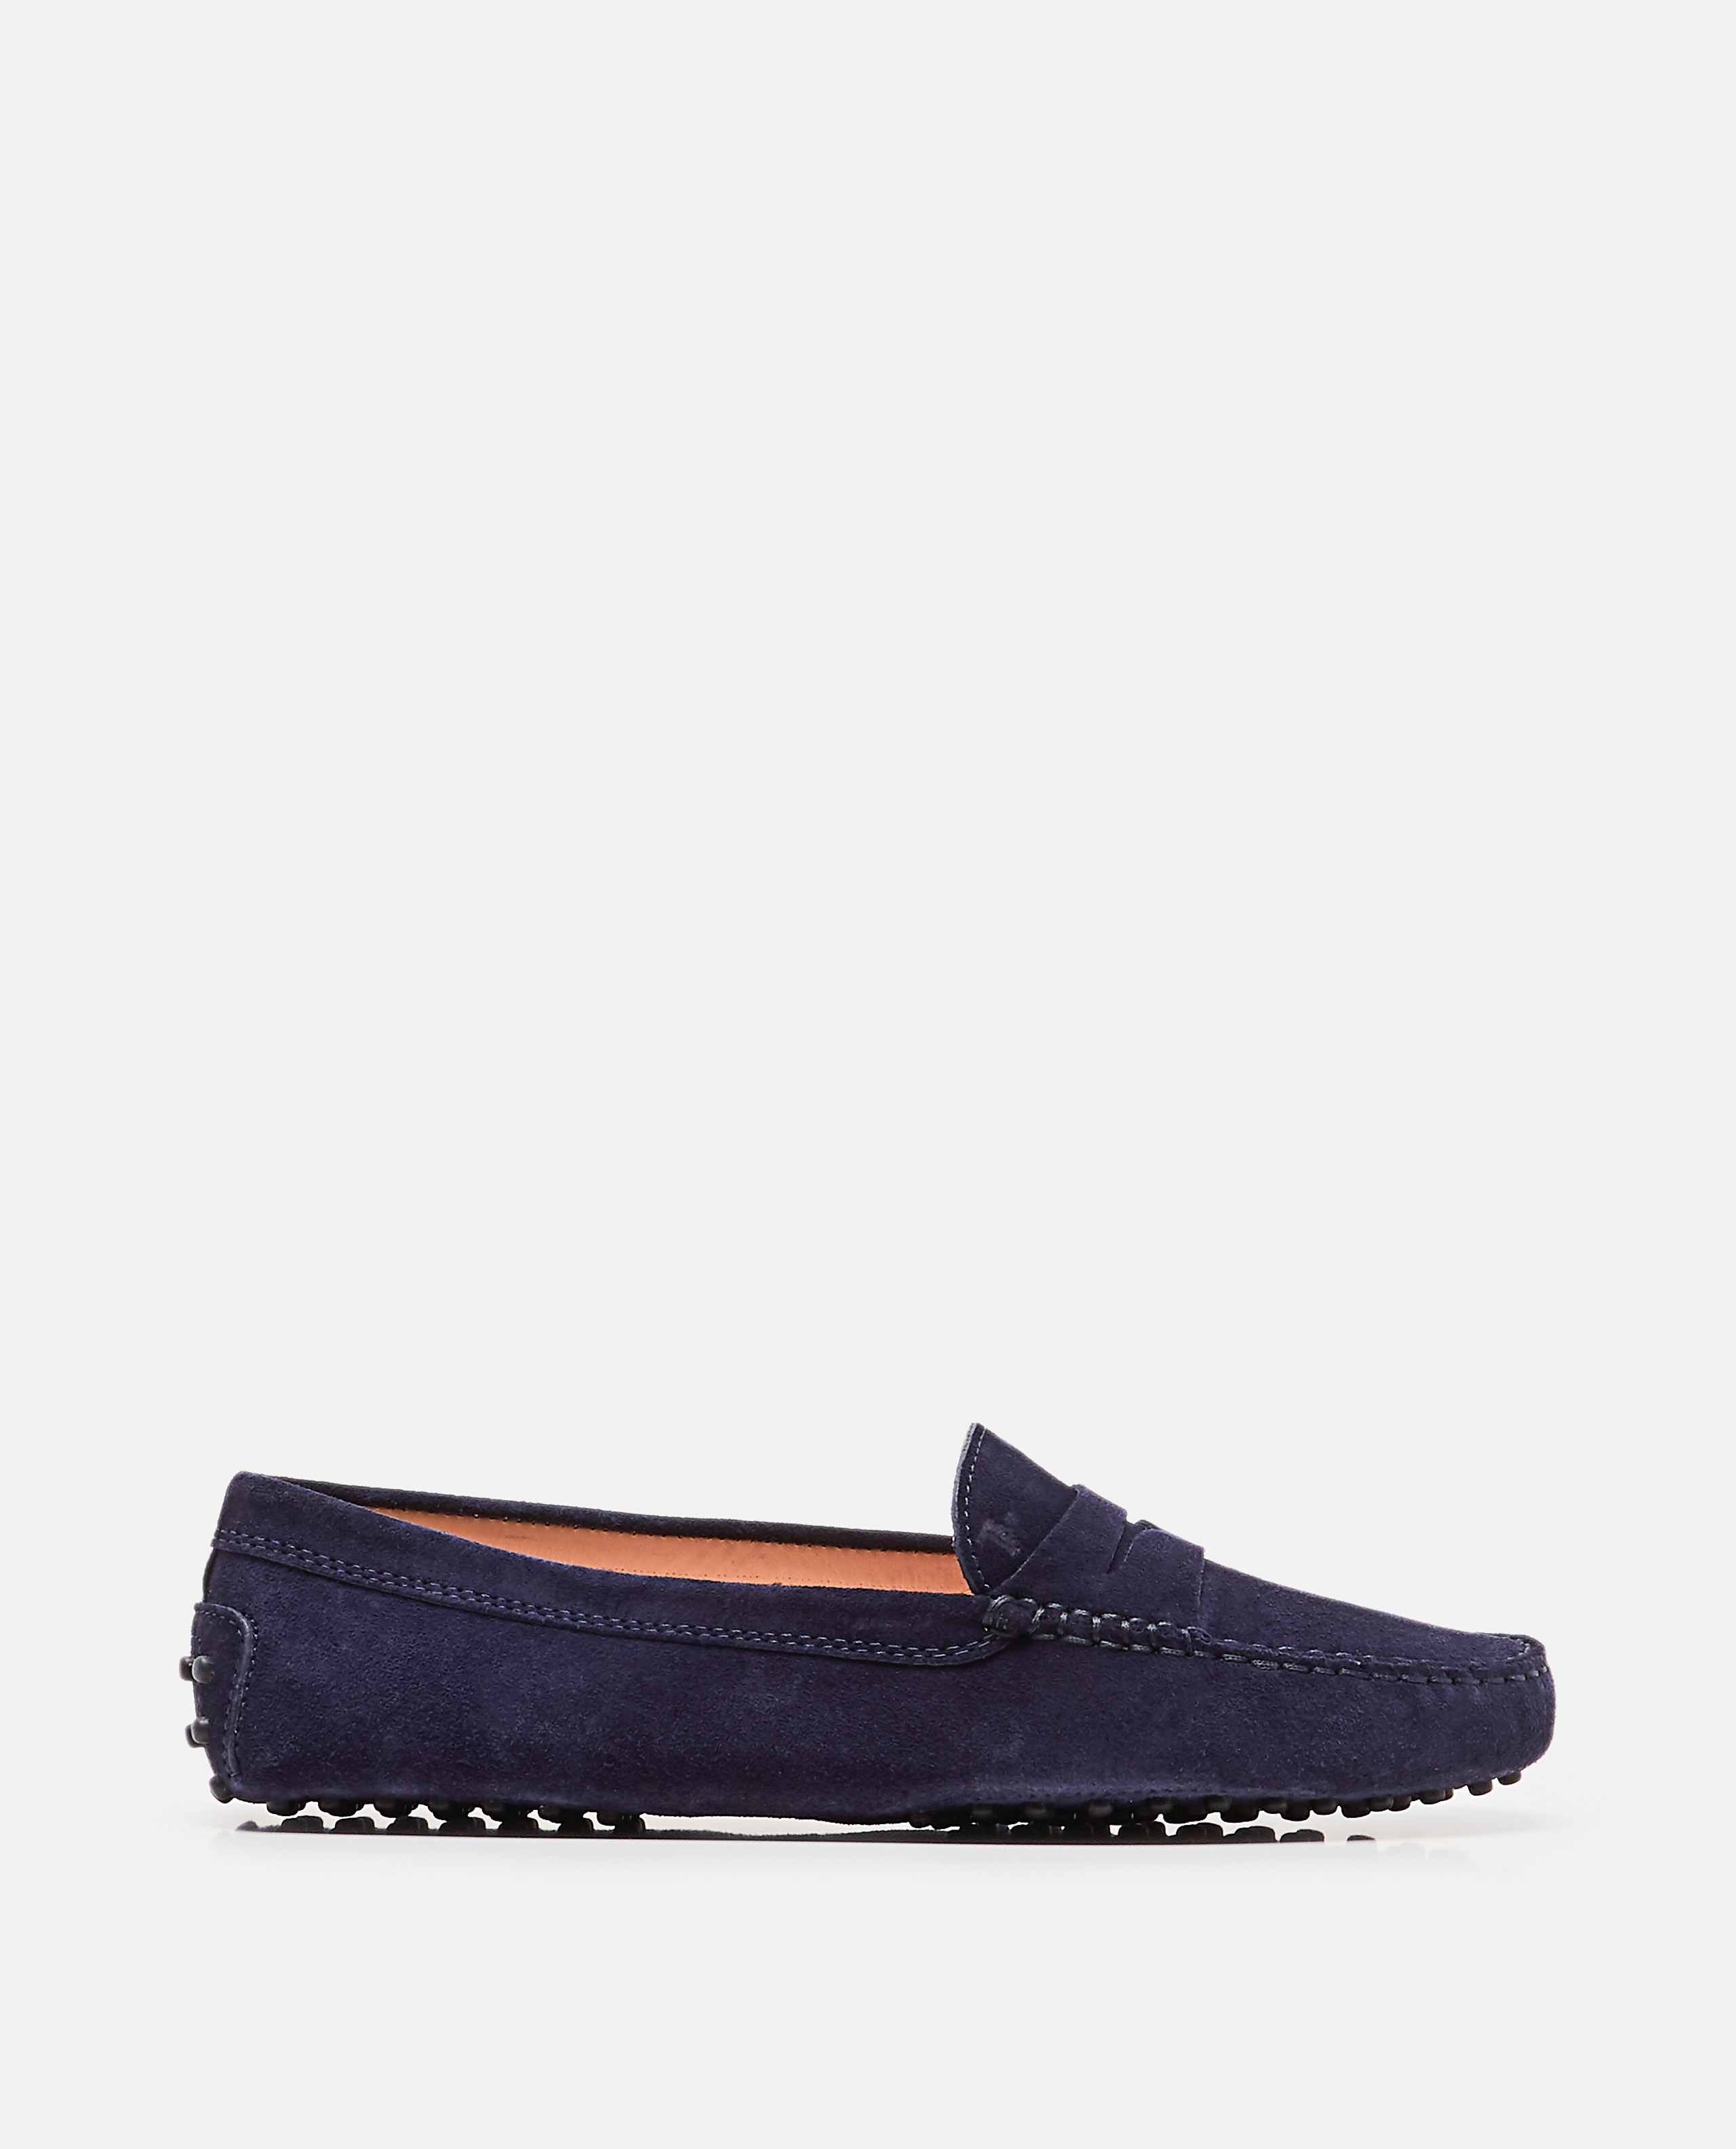 Gommino moccasin